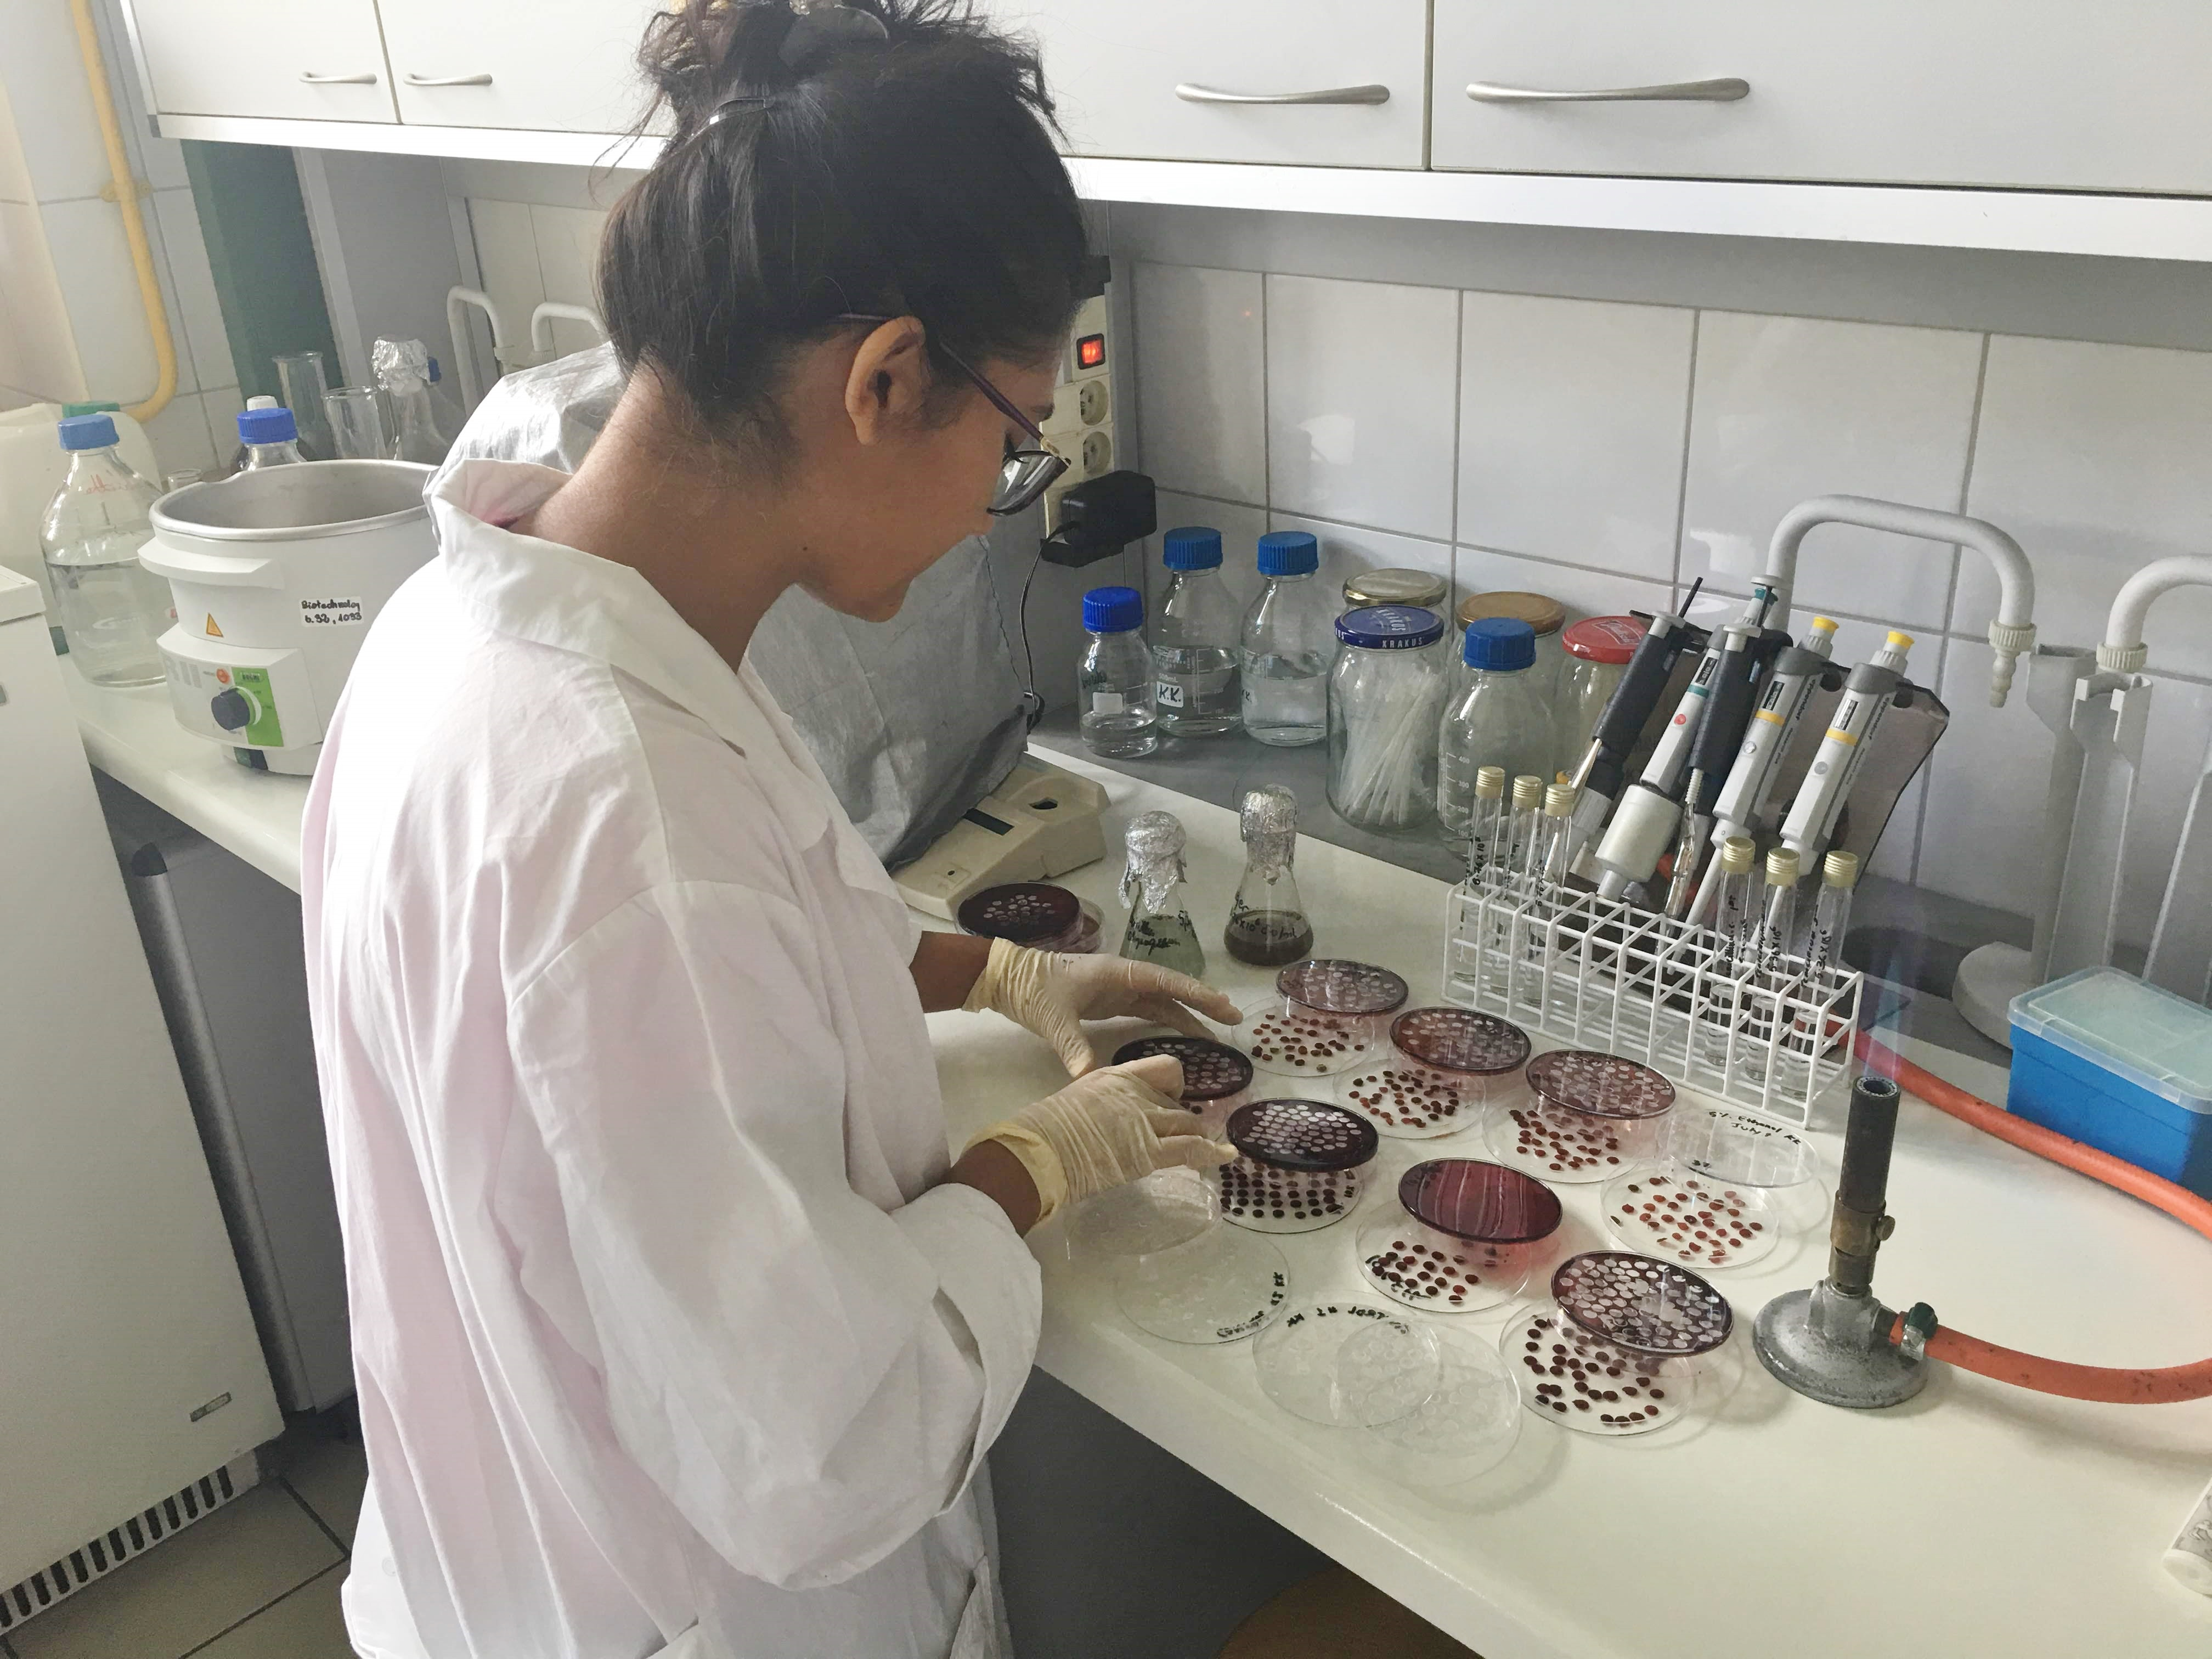 Researcher in lab preparing samples to be tested under a microscope.